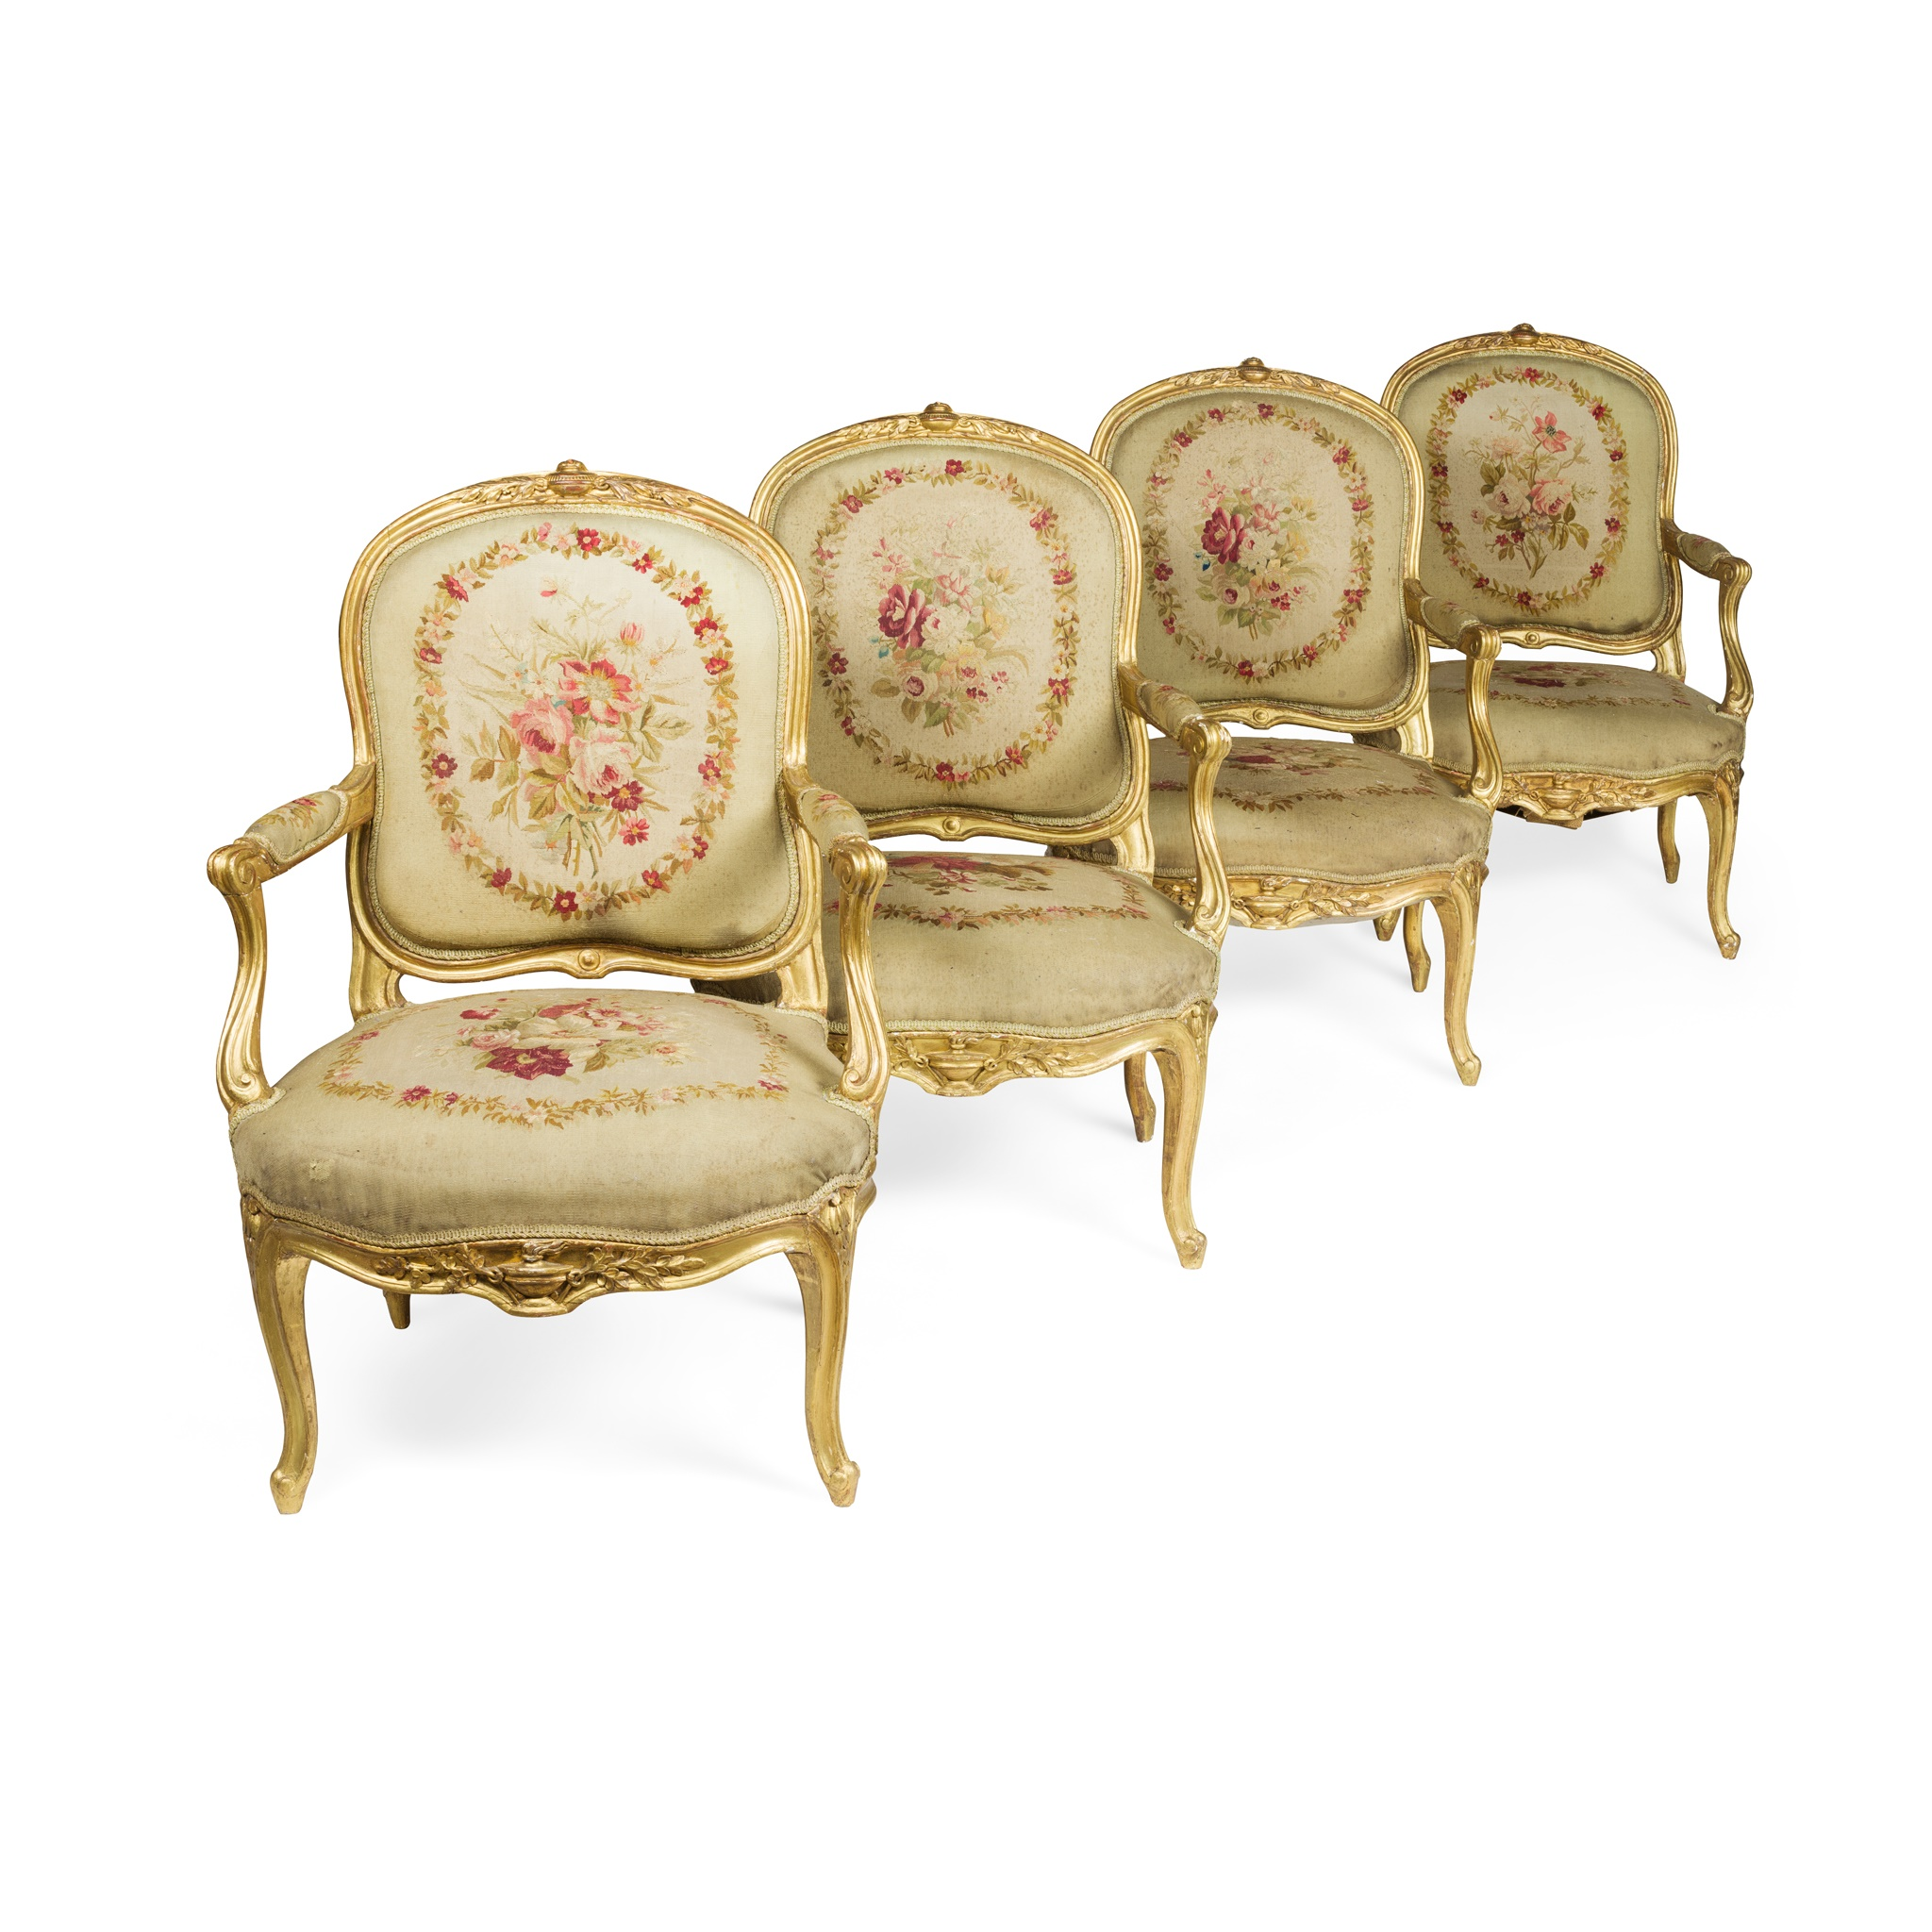 SUITE OF FOUR FRENCH GILTWOOD AND AUBUSSON FAUTEUILS 19TH CENTURY